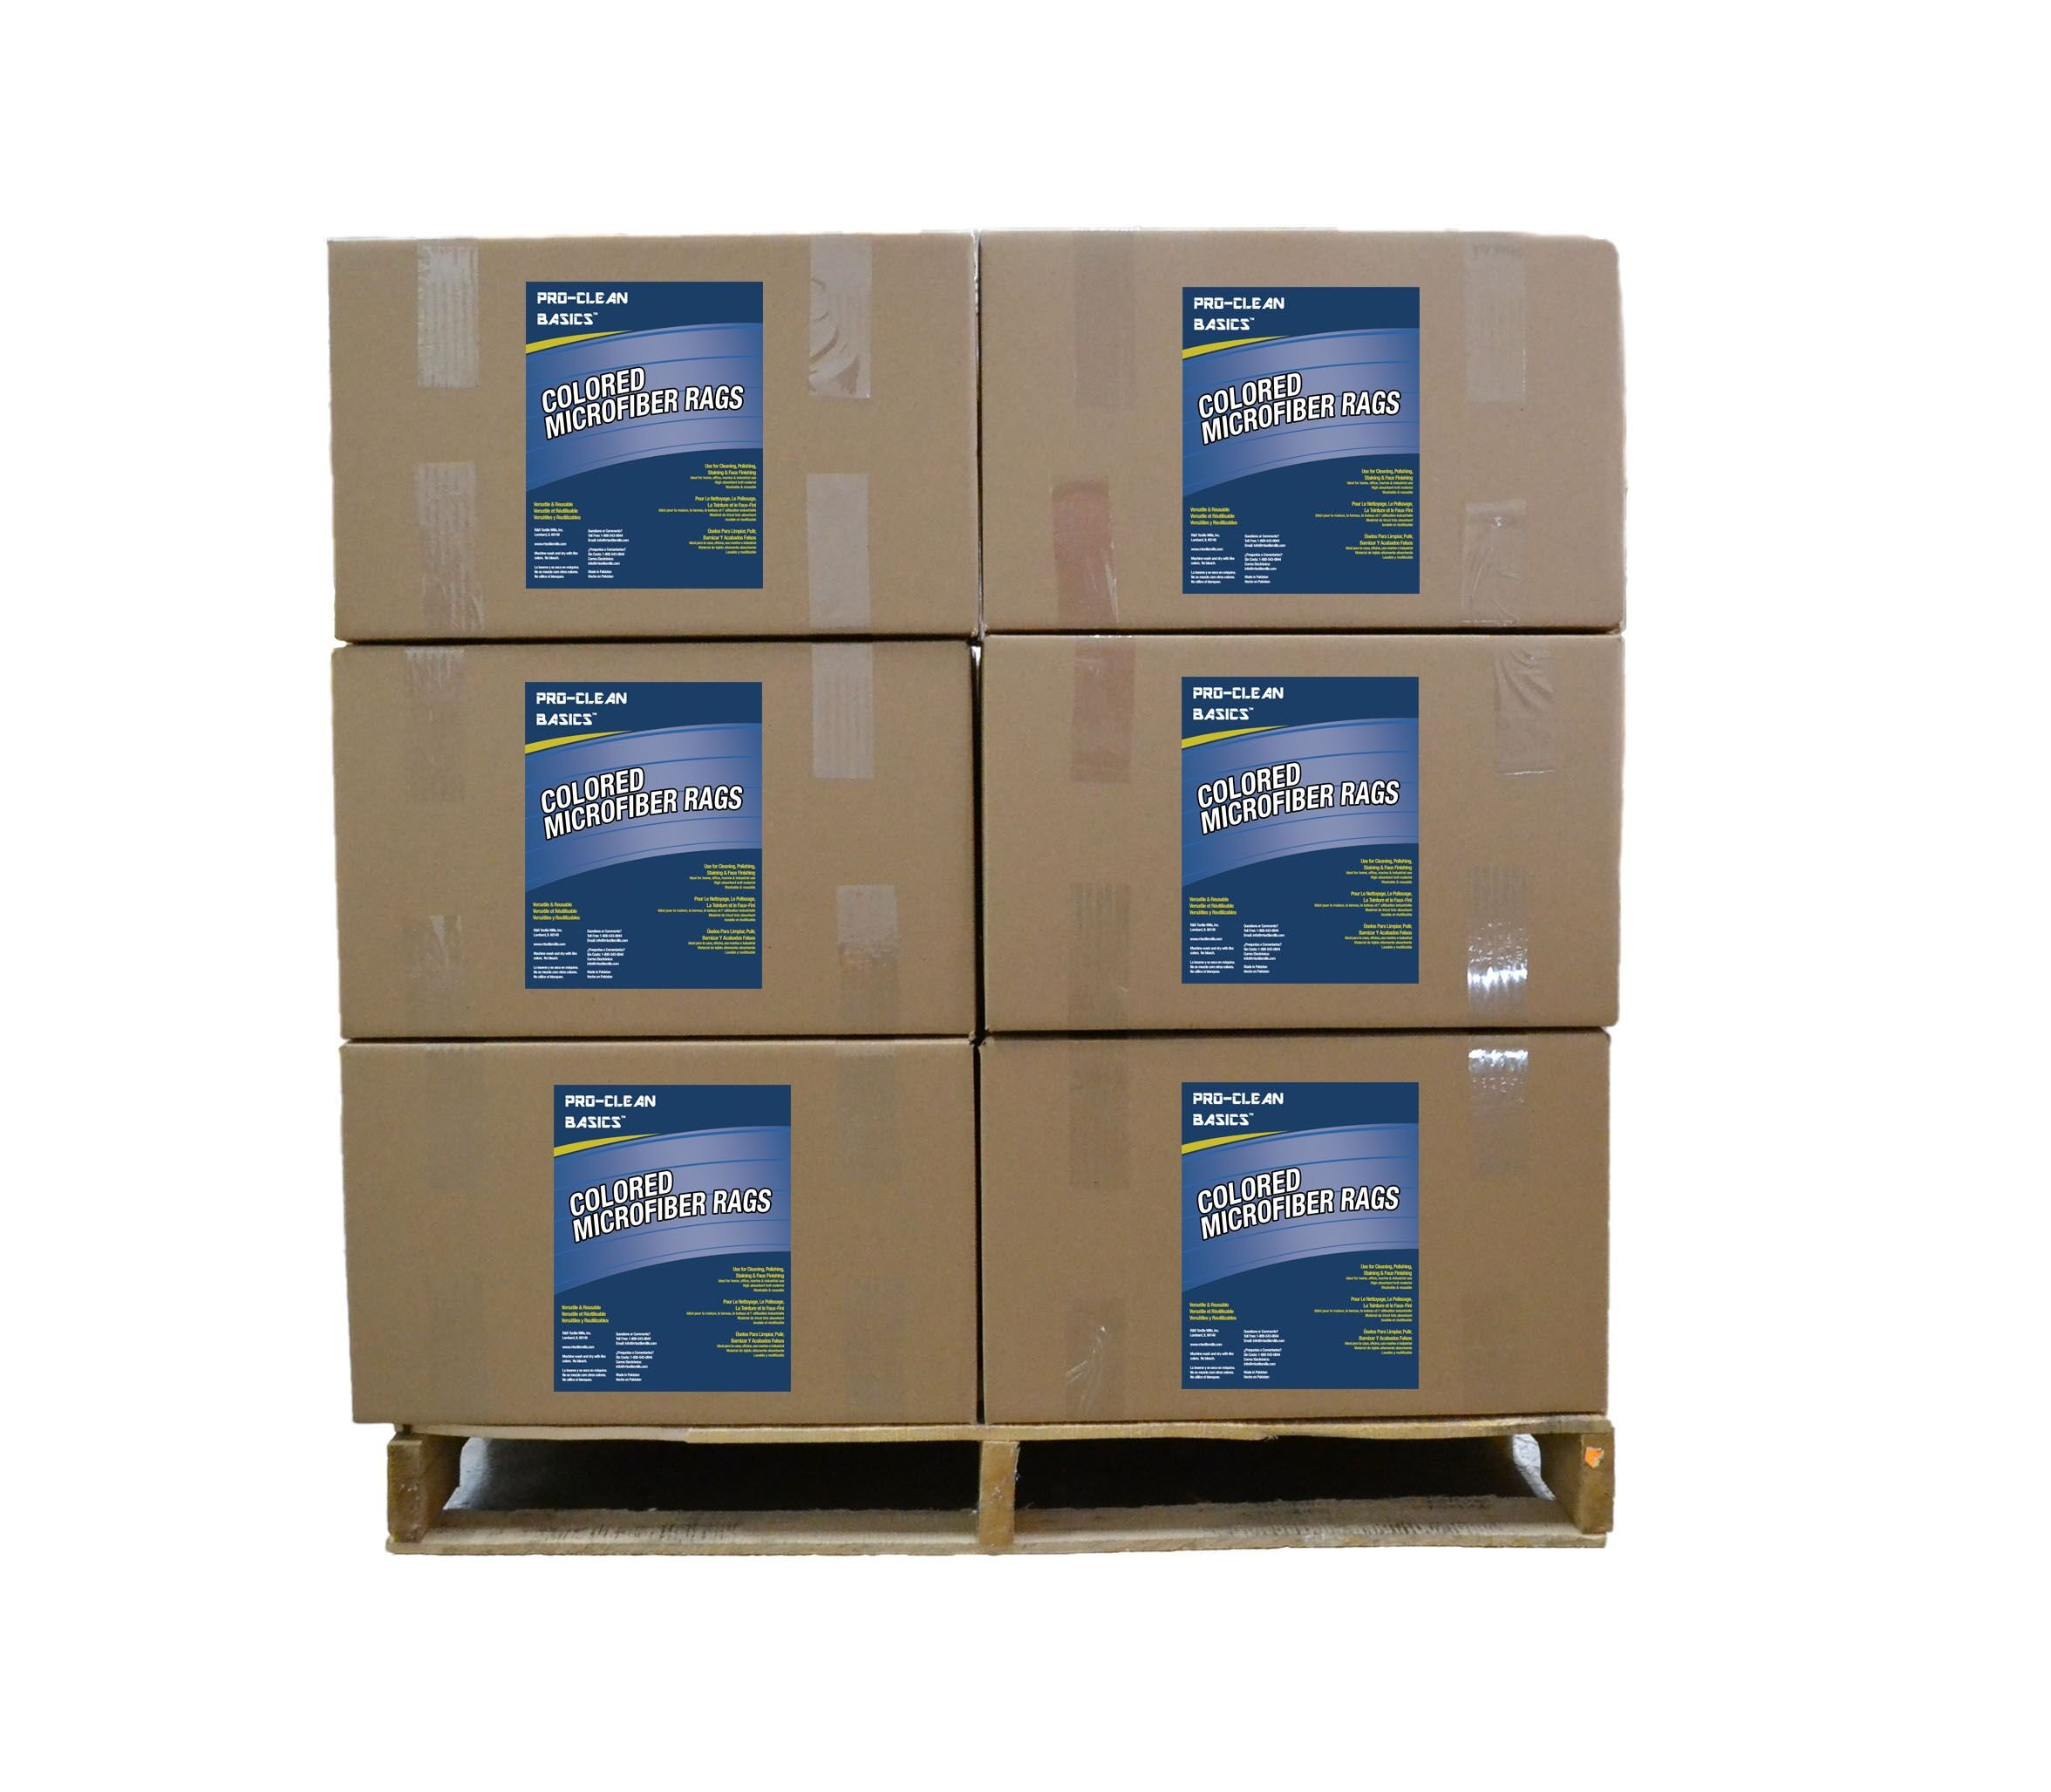 Pro-Clean Basics A95020 New Microfiber Rag Pallet, 650 lb. or 25 lb. Boxes by Pro-Clean Basics